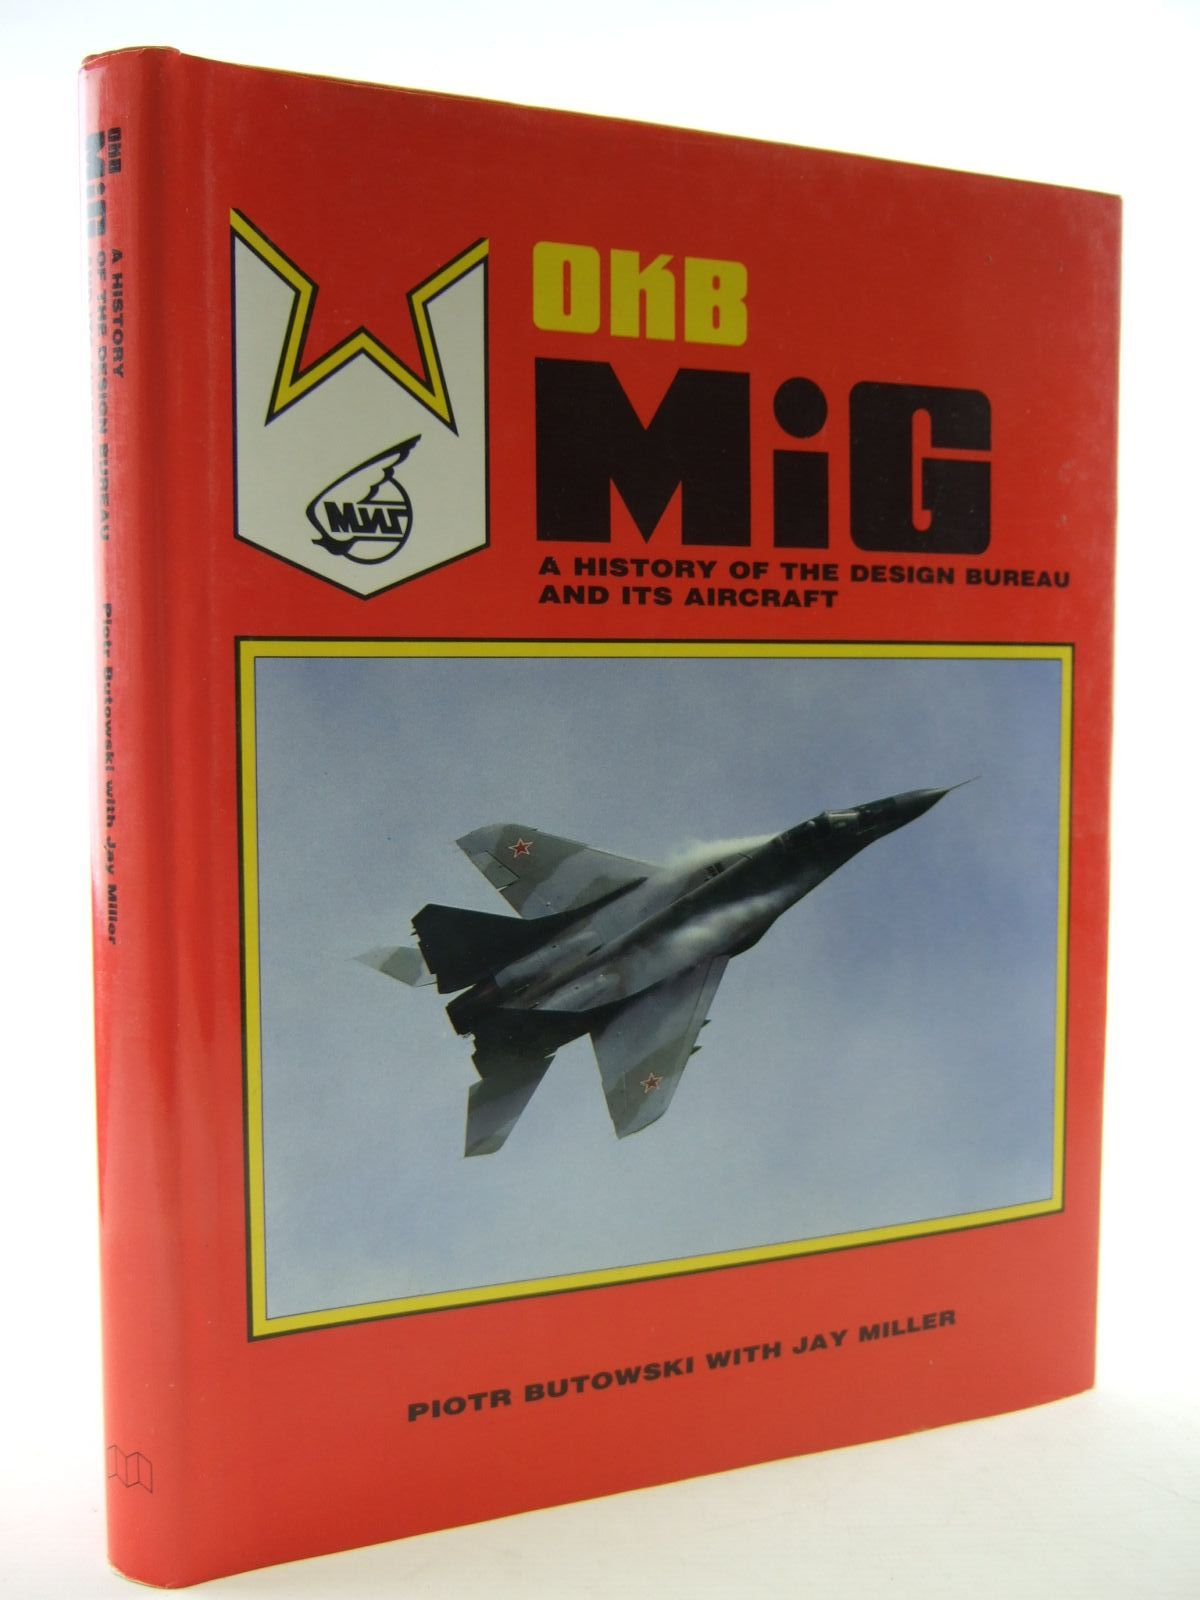 Photo of OKB MIG A HISTORY OF THE DESIGN BUREAU AND ITS AIRCRAFT- Stock Number: 1707104